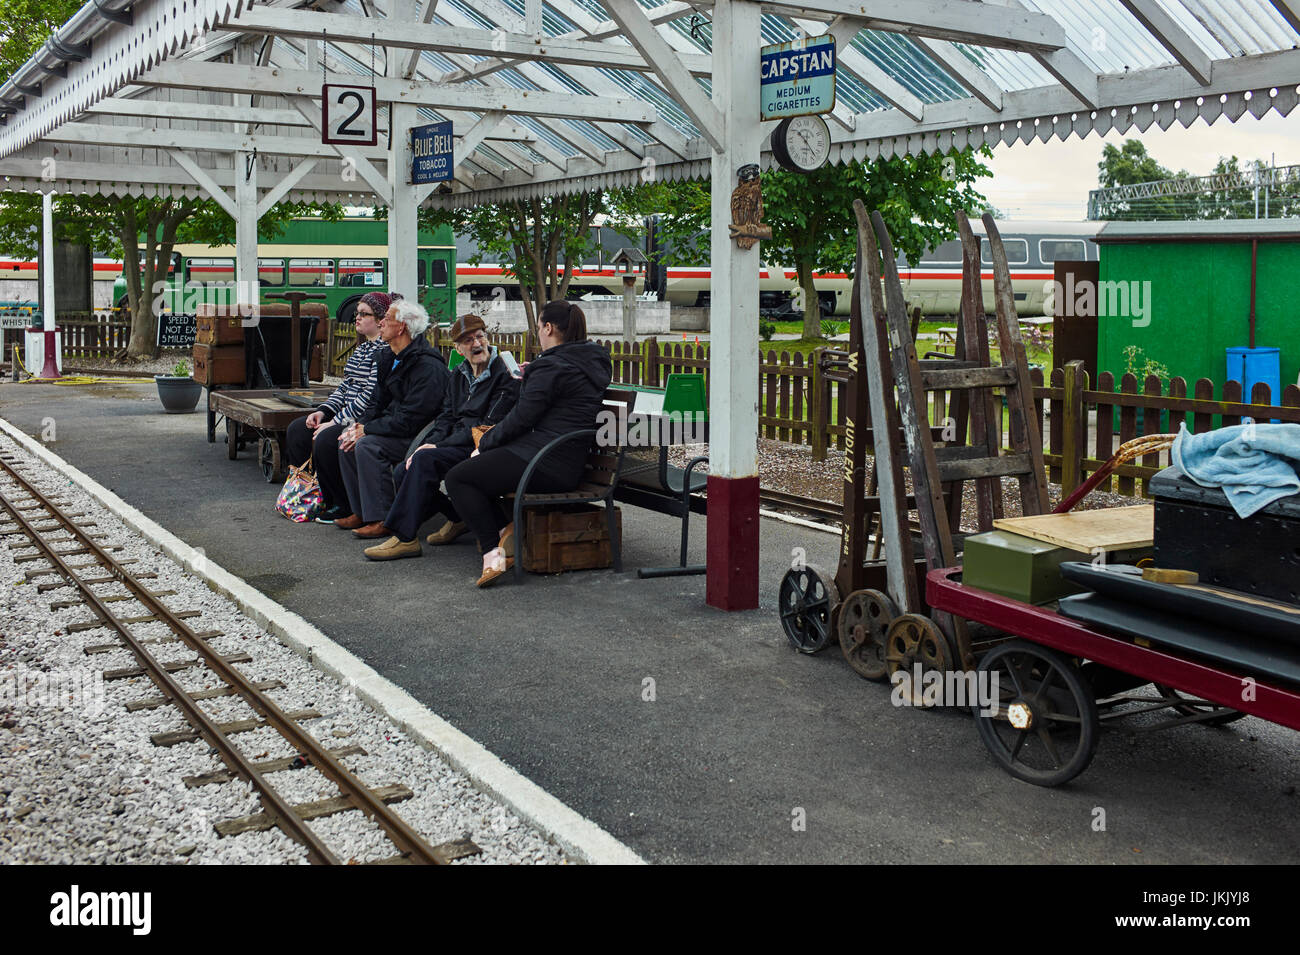 People waiting for miniature train at Crewe railway heritage centre - Stock Image